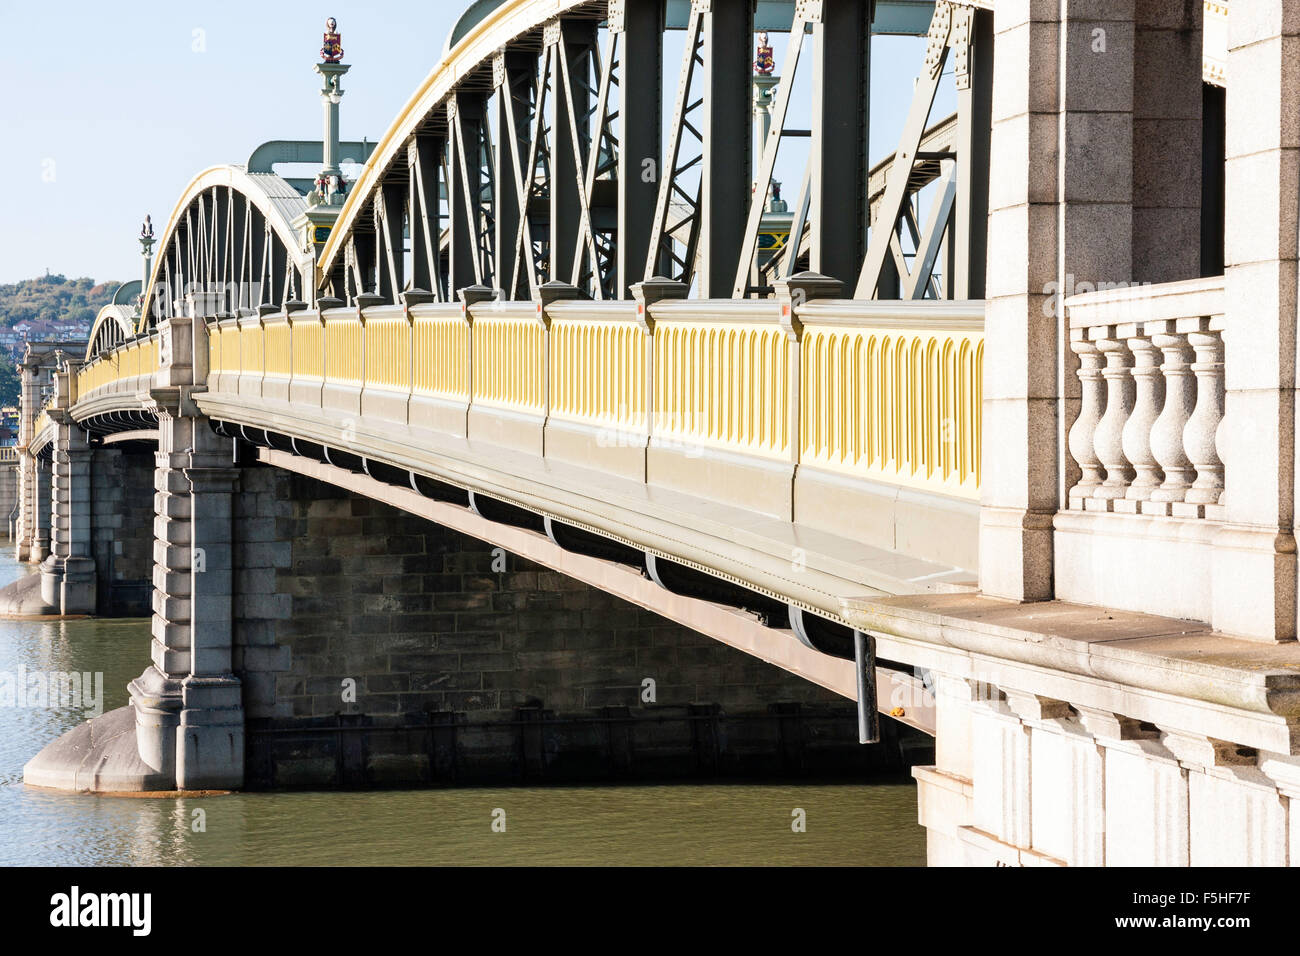 England, Rochester Bridge. 1856 Victorian cast-iron bridge over the river Medway, view along side structure, showing Stock Photo